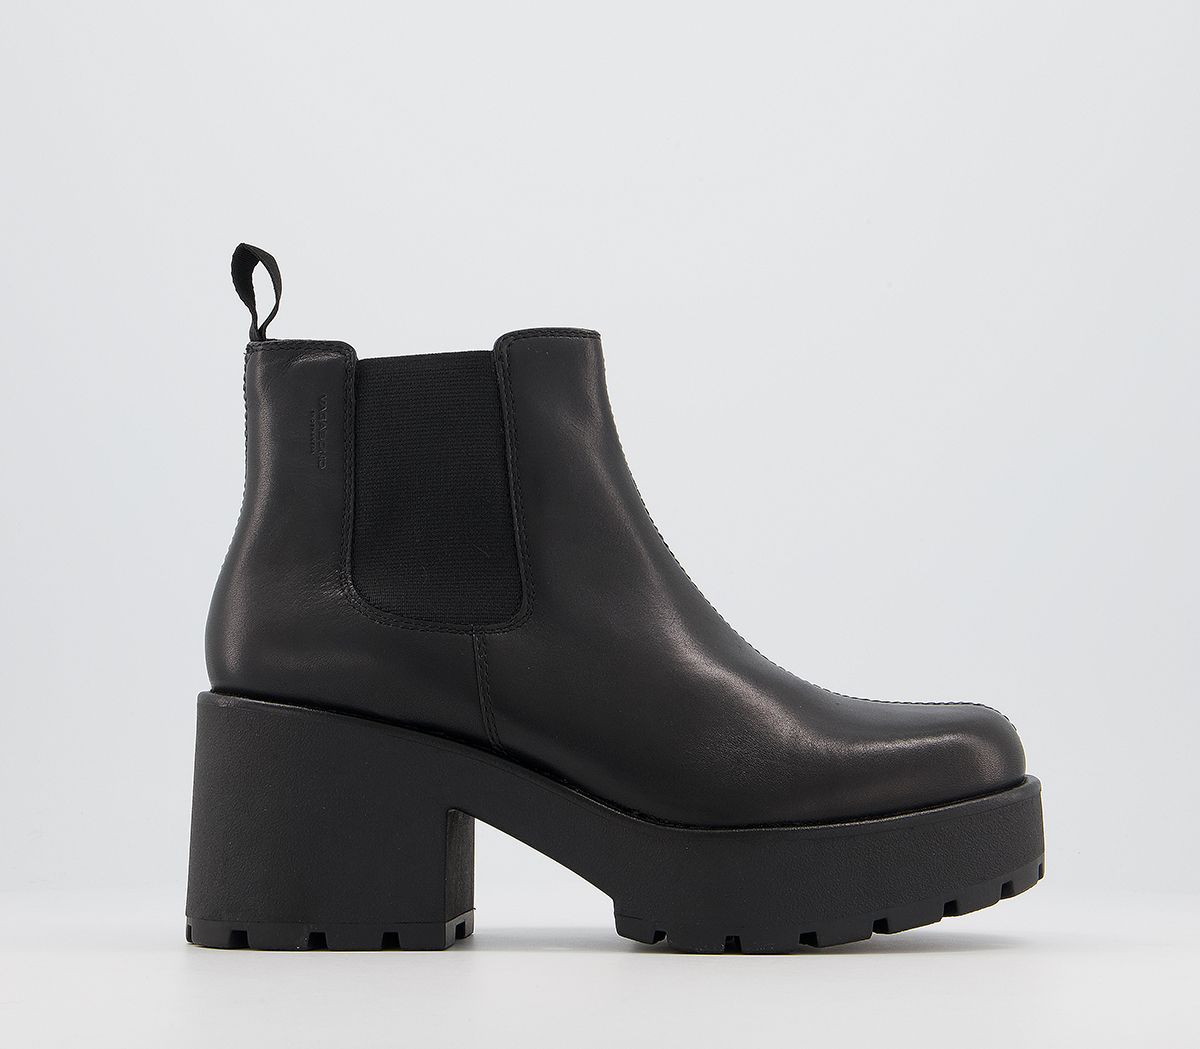 7aab24685e5 Dioon Elastic Chelsea Boots Exclusive